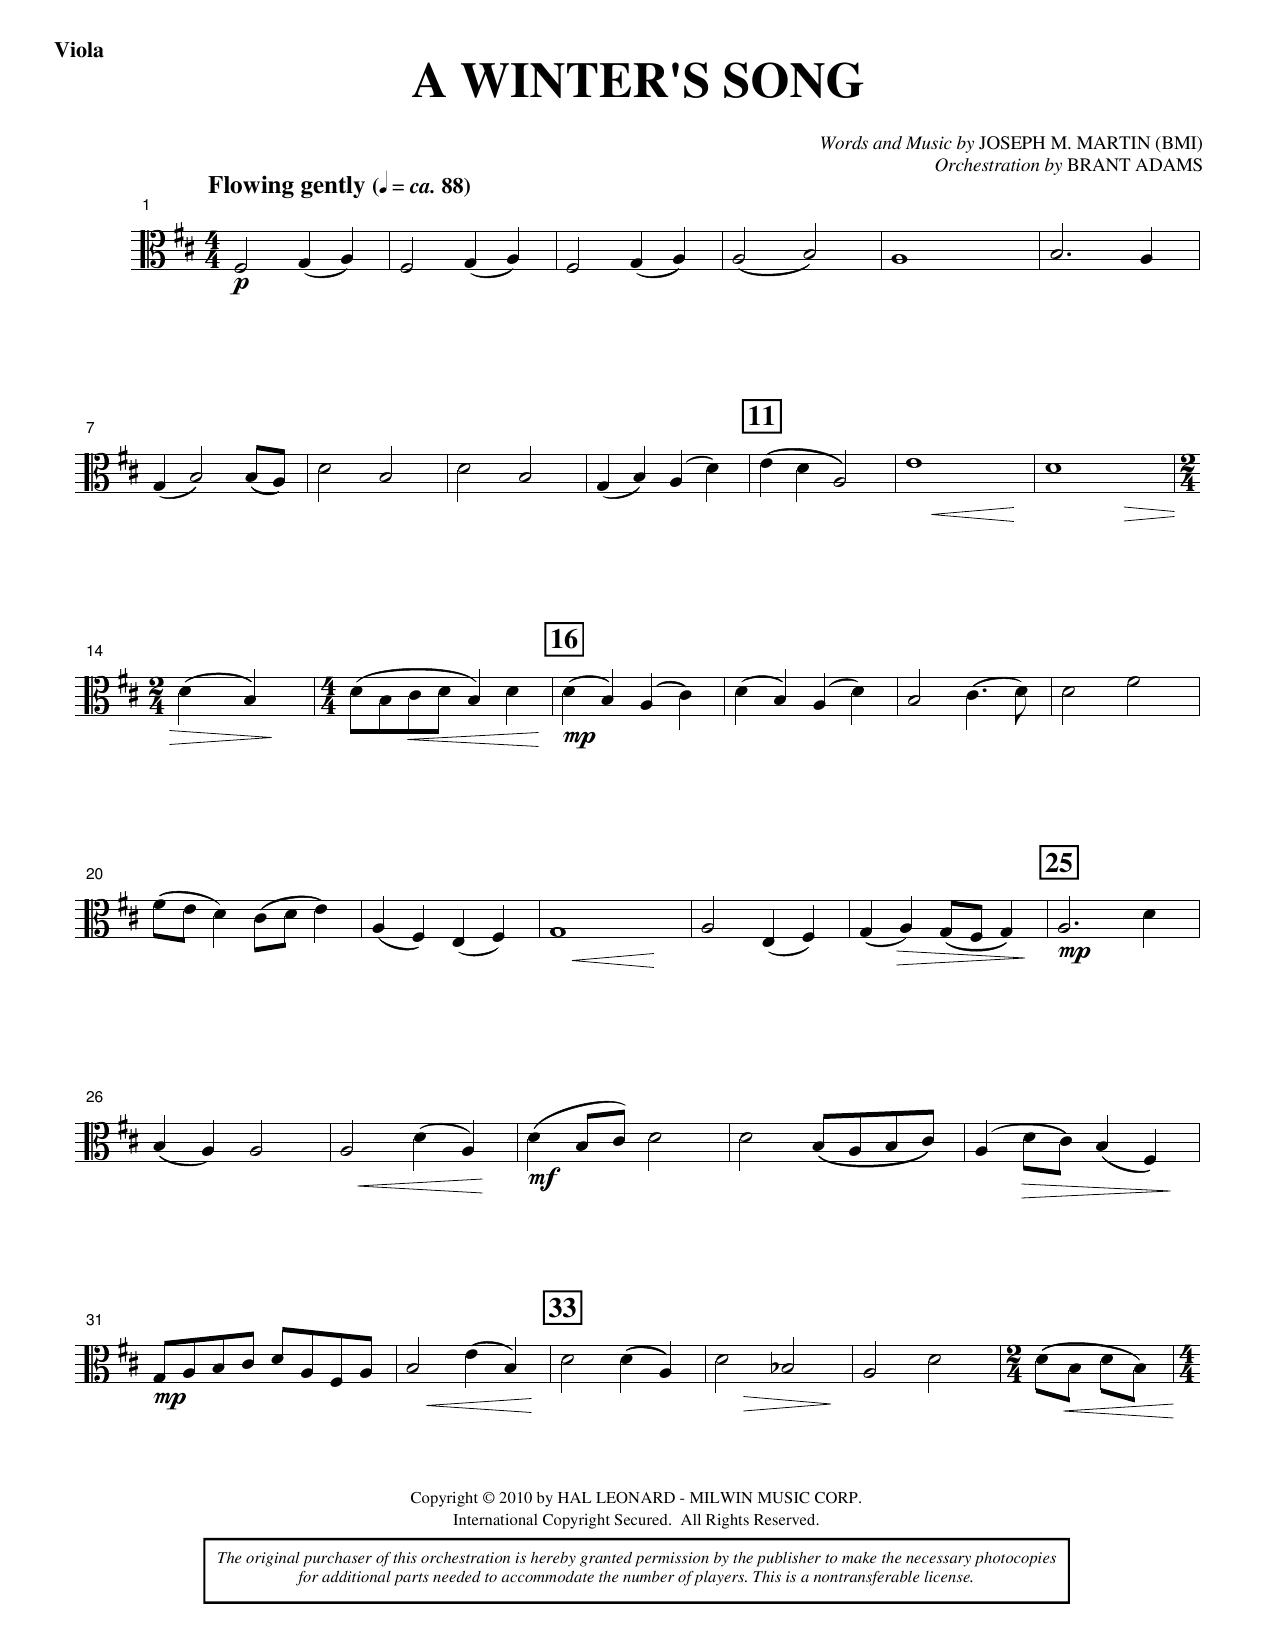 Joseph M. Martin A Winter's Song (from Winter's Grace) - Viola sheet music notes printable PDF score